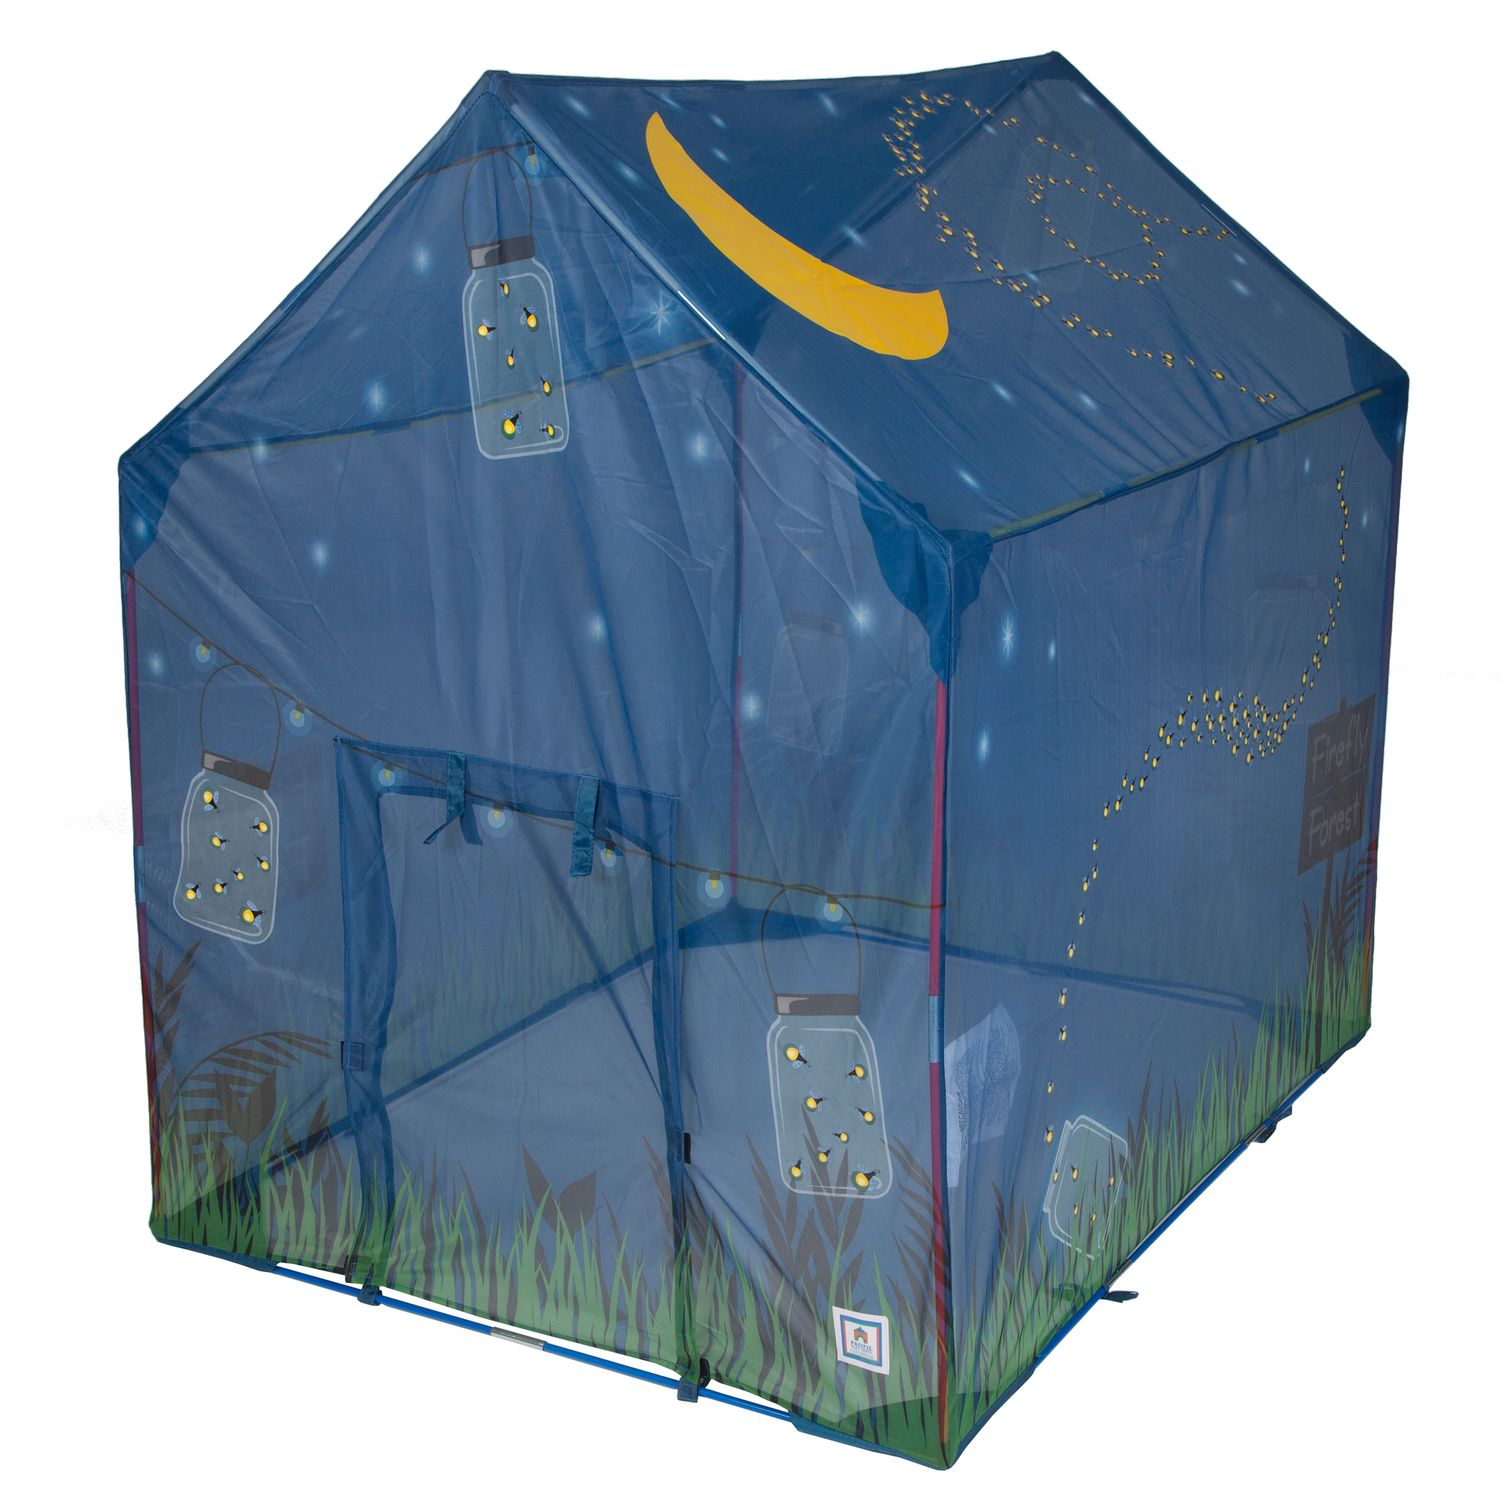 Pacific Play Tents Glow In The Dark Firefly House Tent  sc 1 st  Kohlu0027s & Pacific Play Tents Outdoor Play Toys Toys | Kohlu0027s